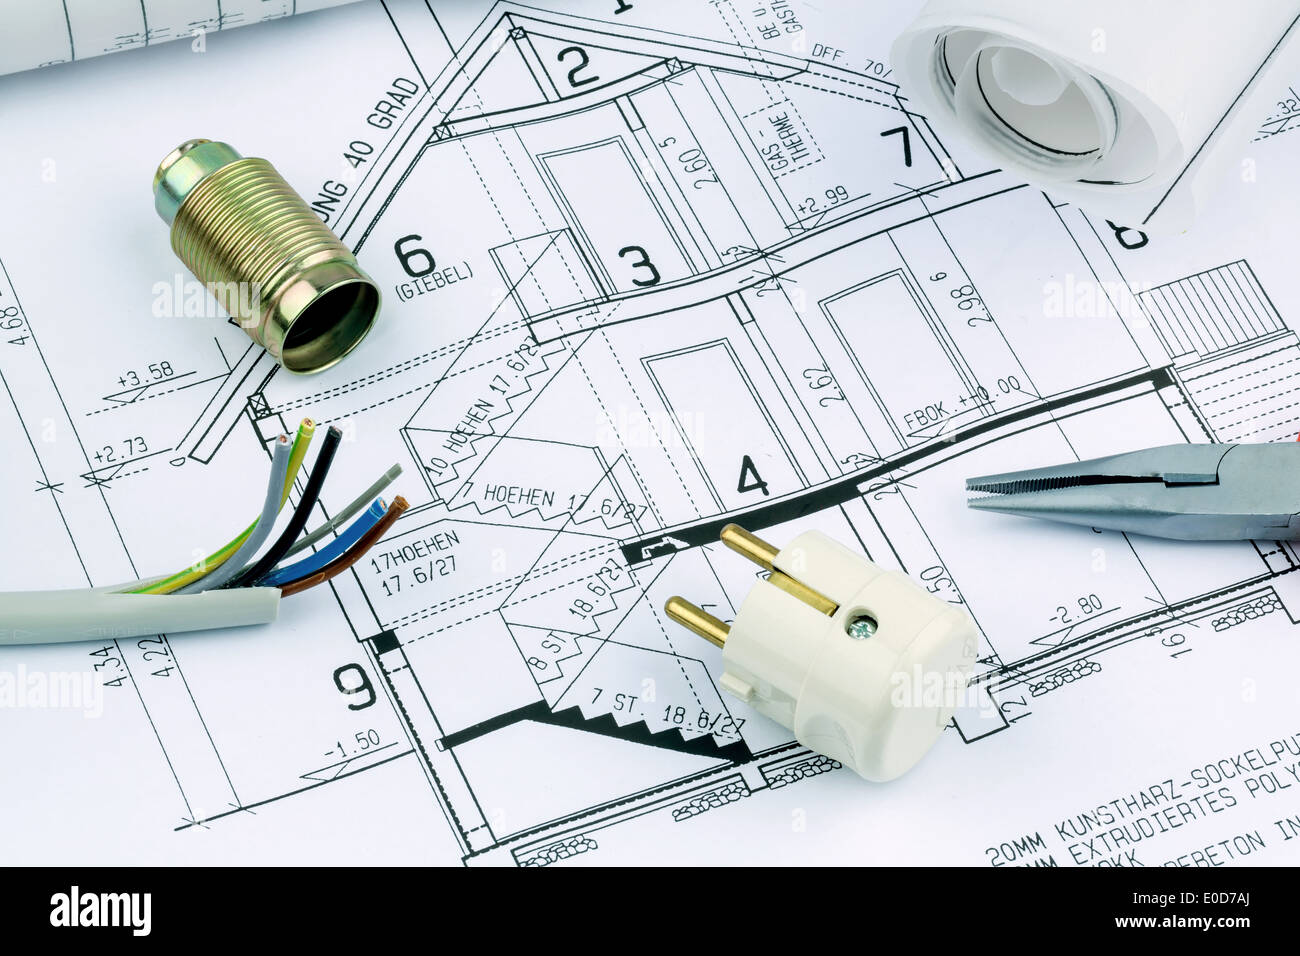 Hausinstallation Stockfotos & Hausinstallation Bilder - Alamy